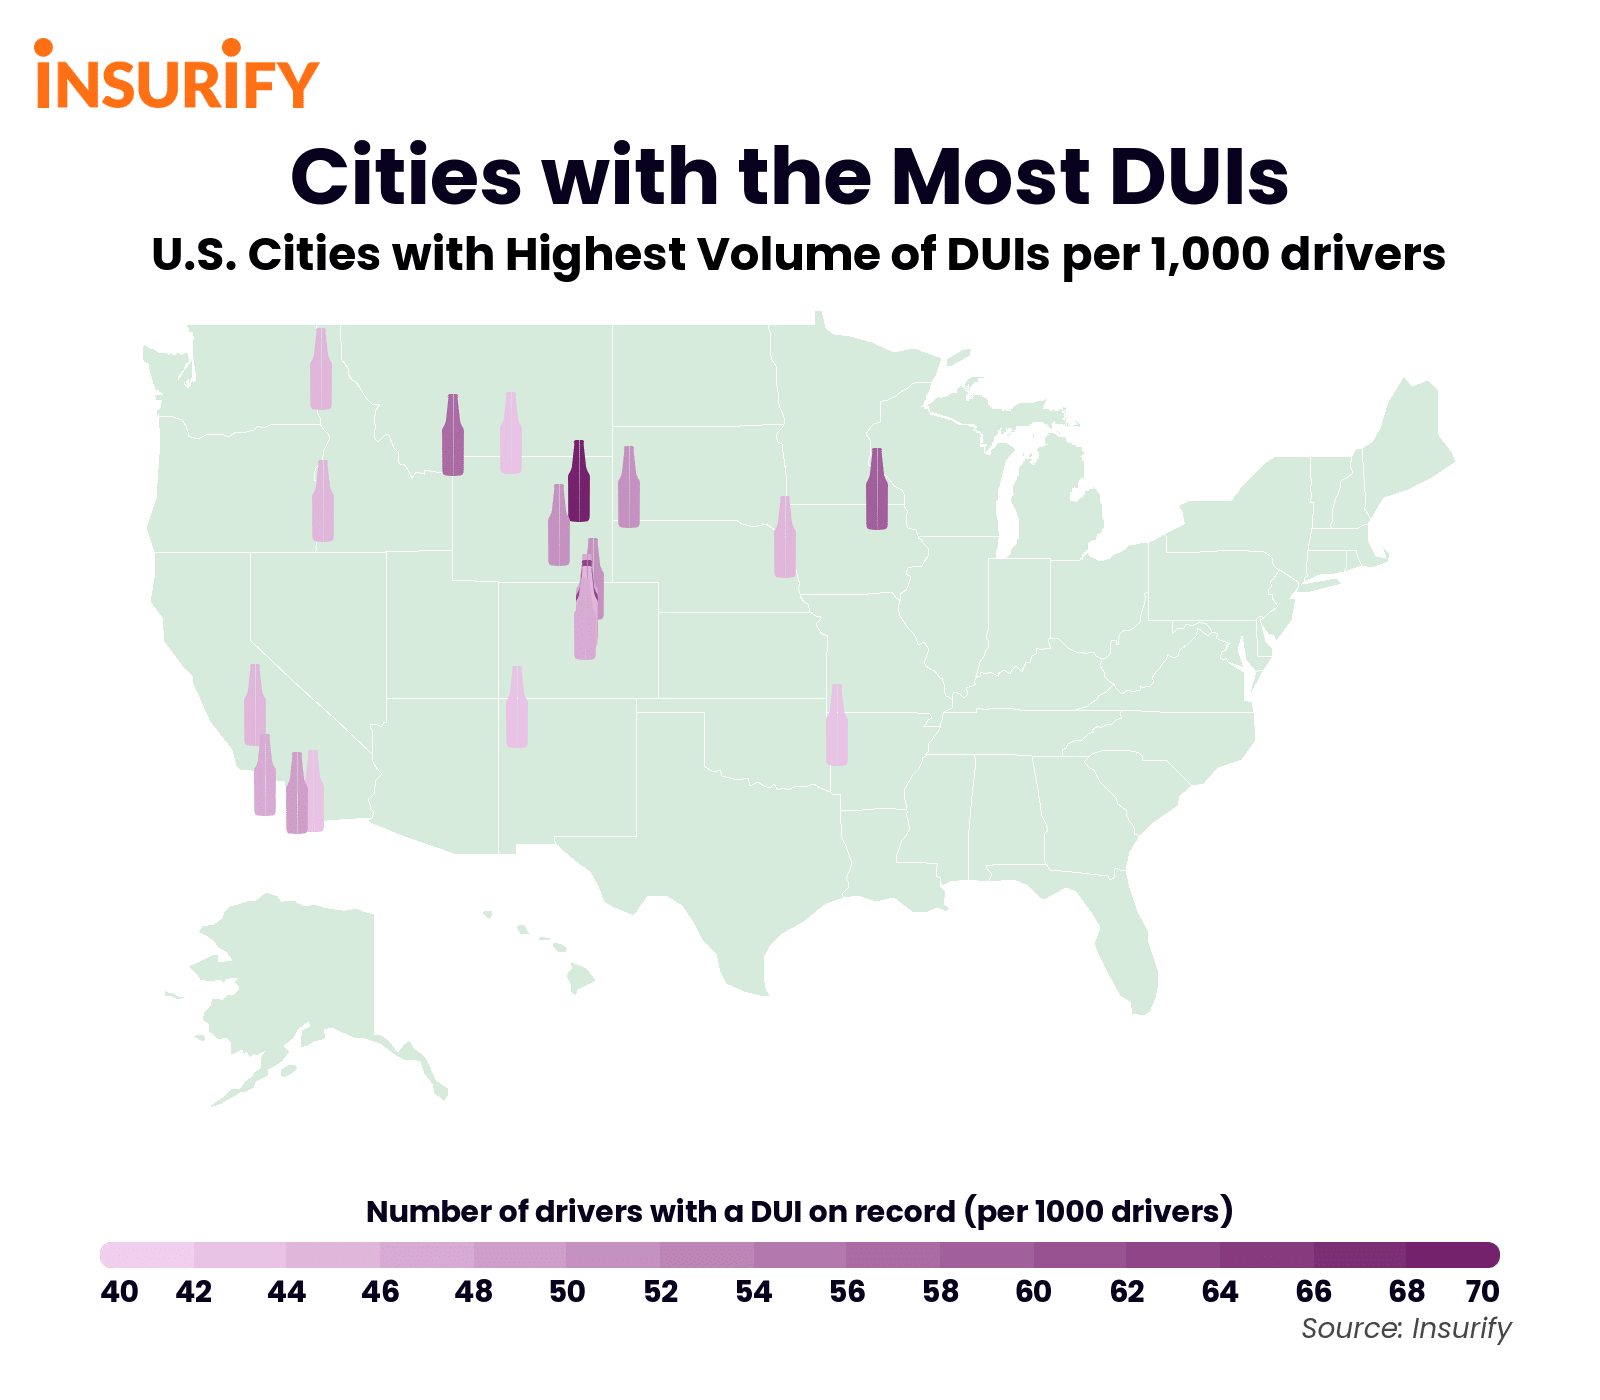 An icon map indicating which U.S. cities have the highest DUI rates.